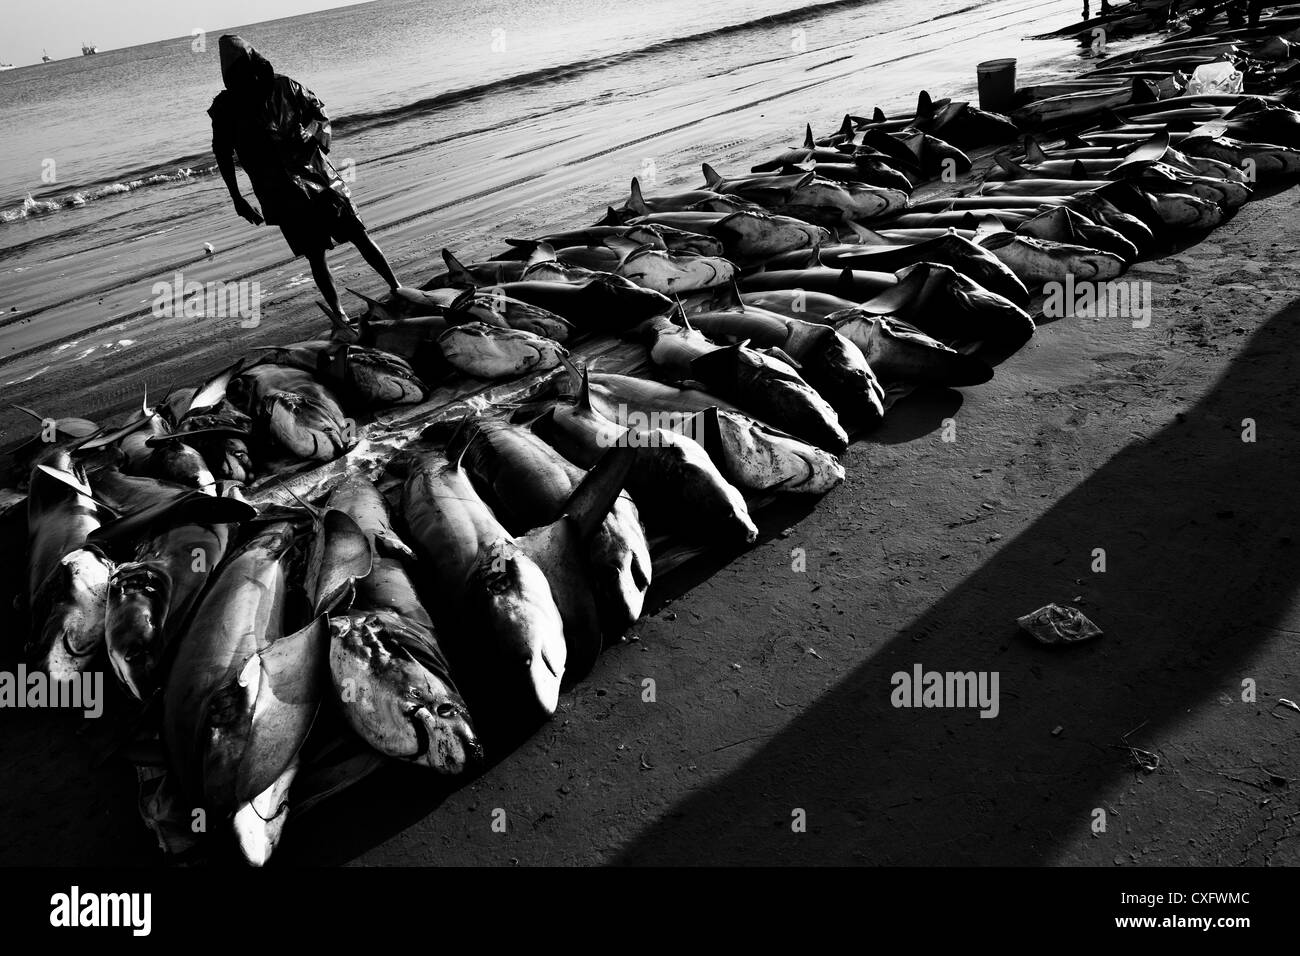 A fisherman counts thresher shark carcasses at dawn on the beach of Manta, Ecuador. - Stock Image